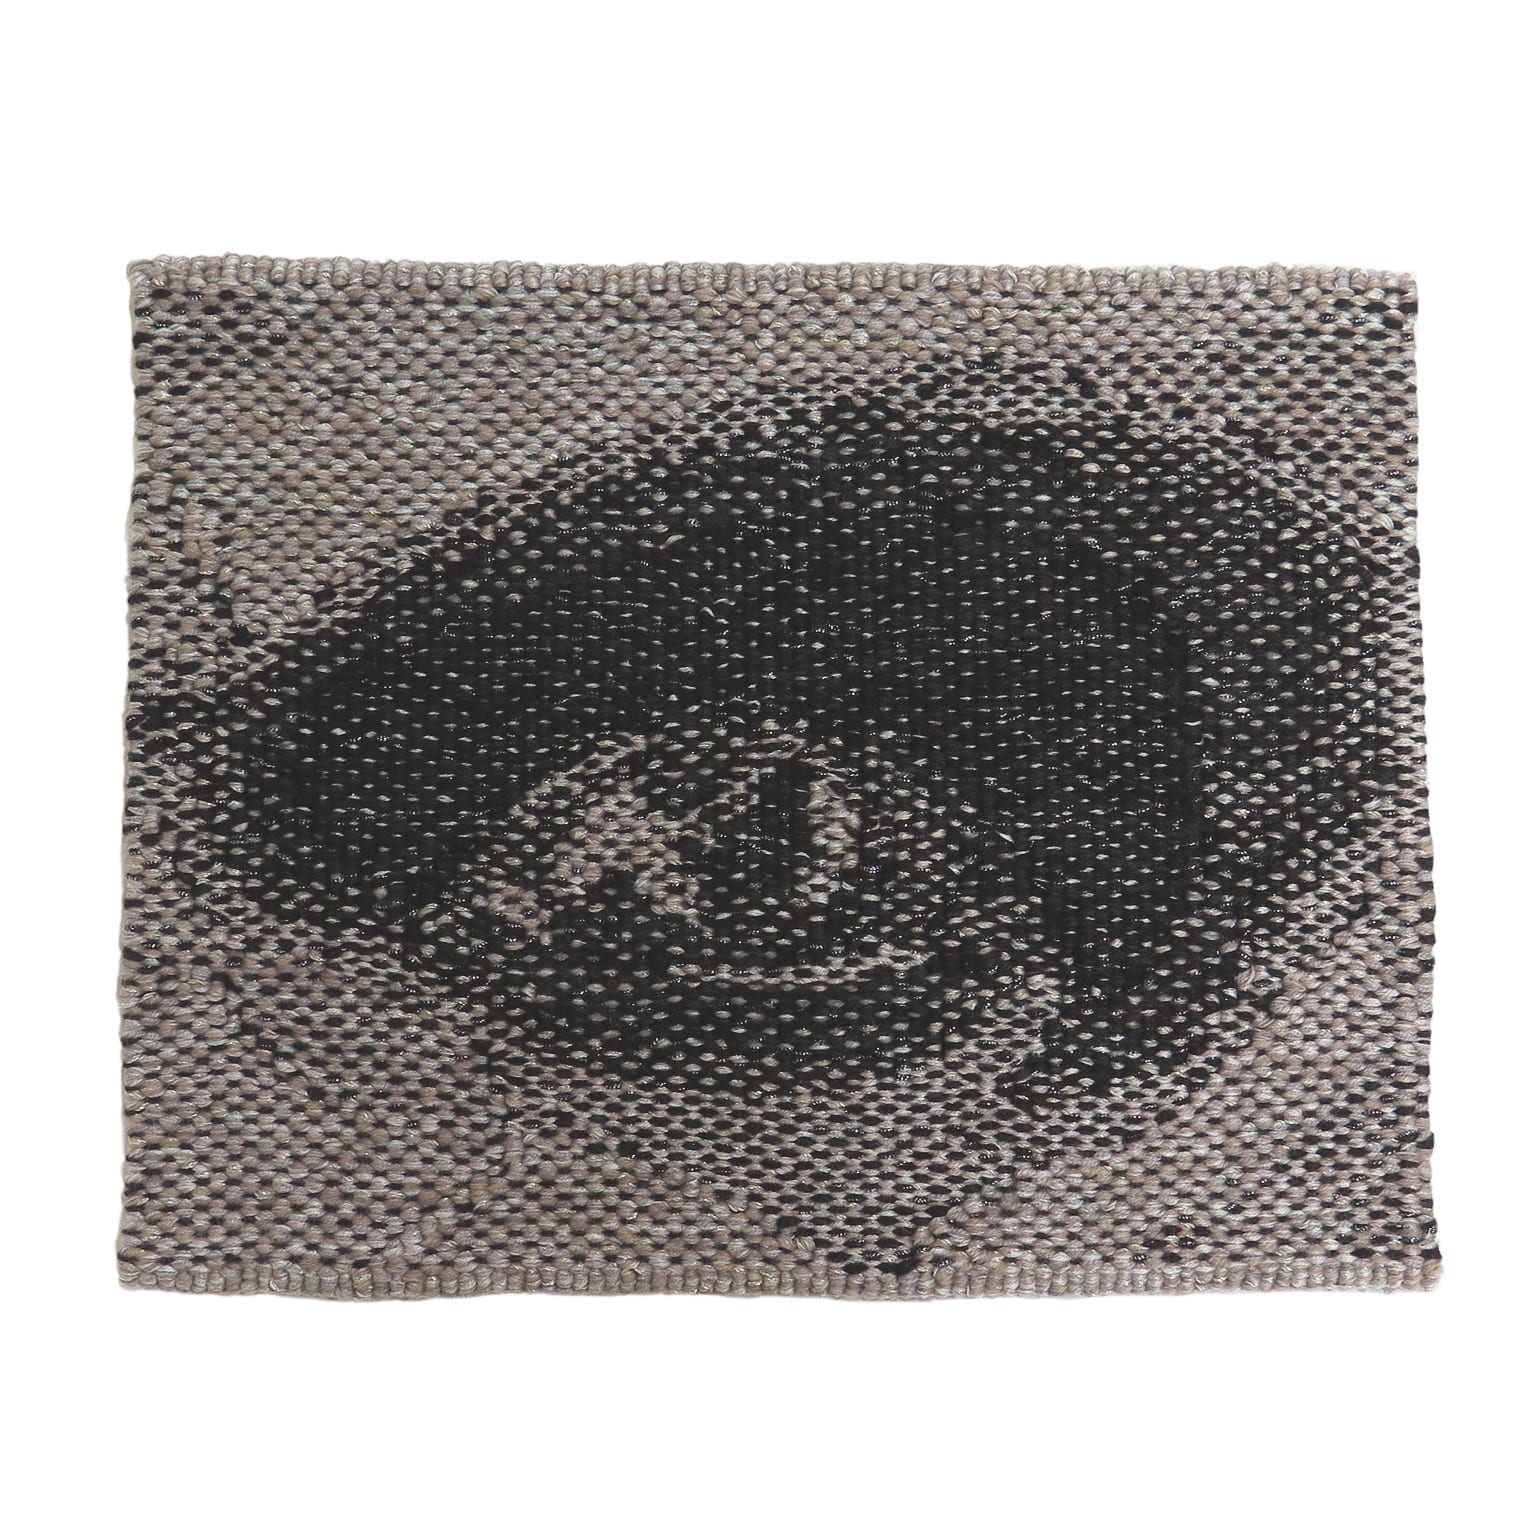 'Miili' Edition #6 designed by Brook Andrew in 2019, woven by Chris Cochius, wool, cotton, Lurex, 23.3 x 28.7 cm.